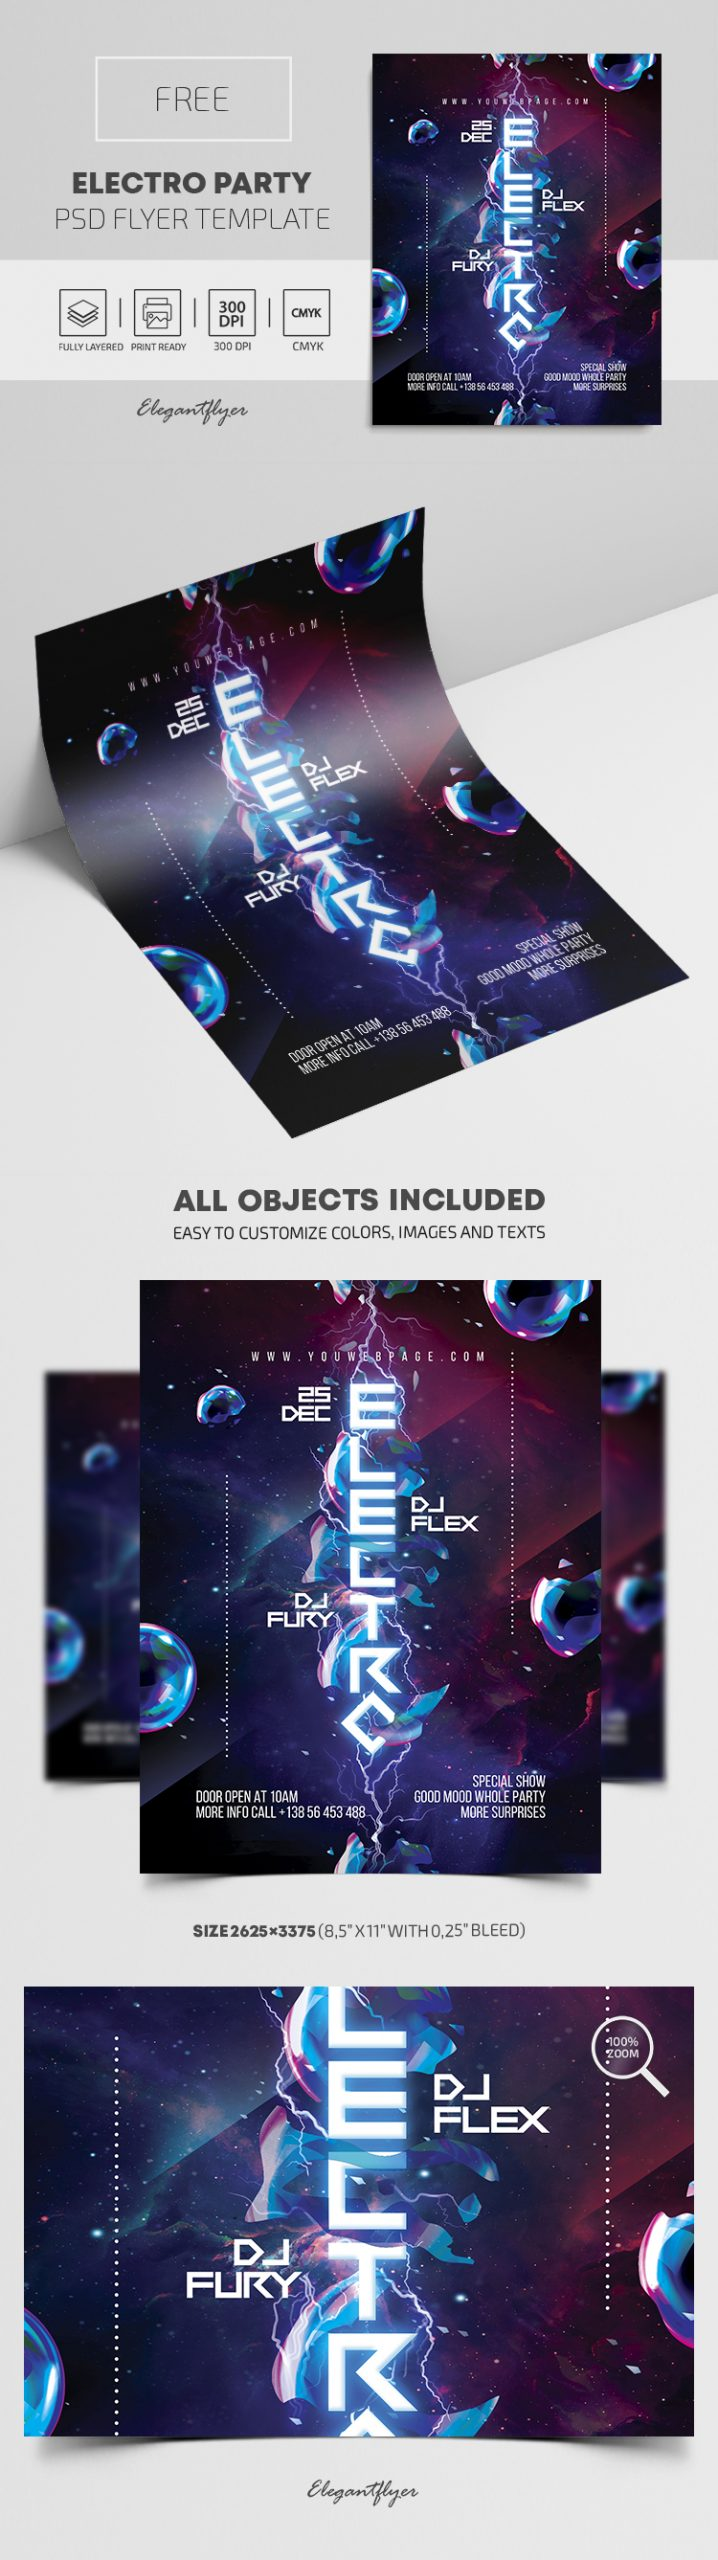 Electro Party – Free PSD Flyer Template